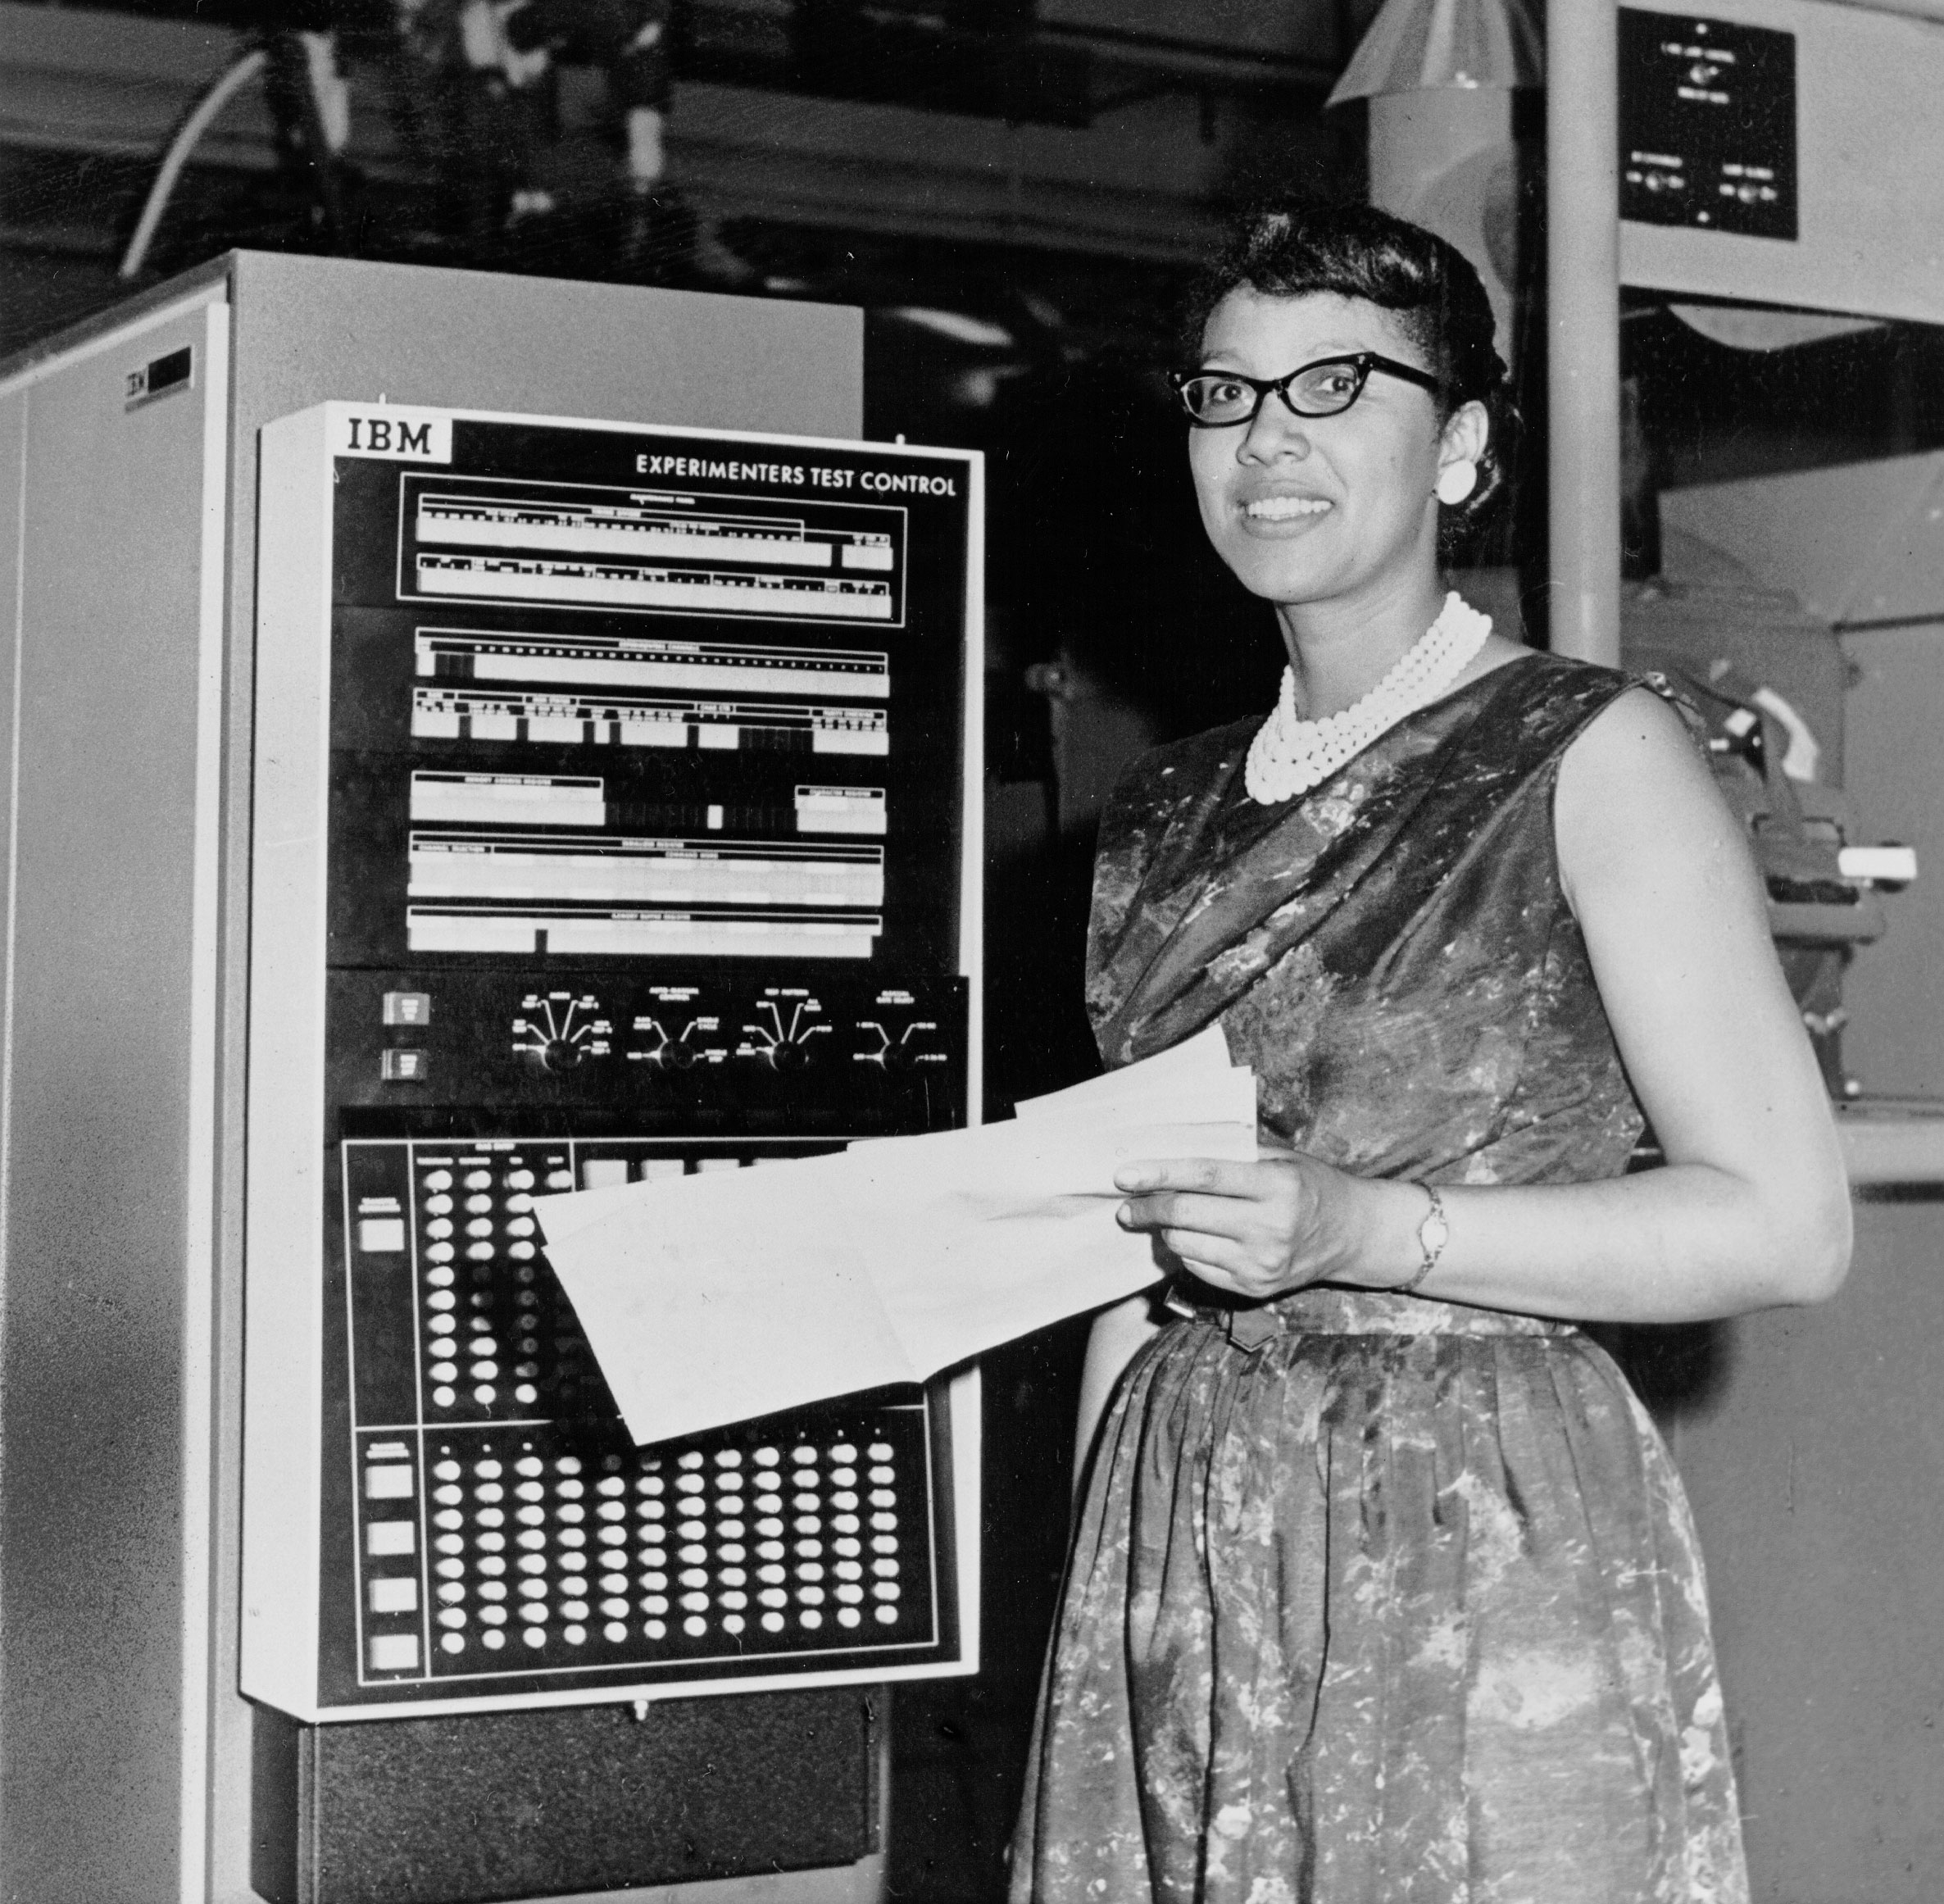 Melba Roy led the group of human computers who tracked the Echo satellites in the 1960s. NASA